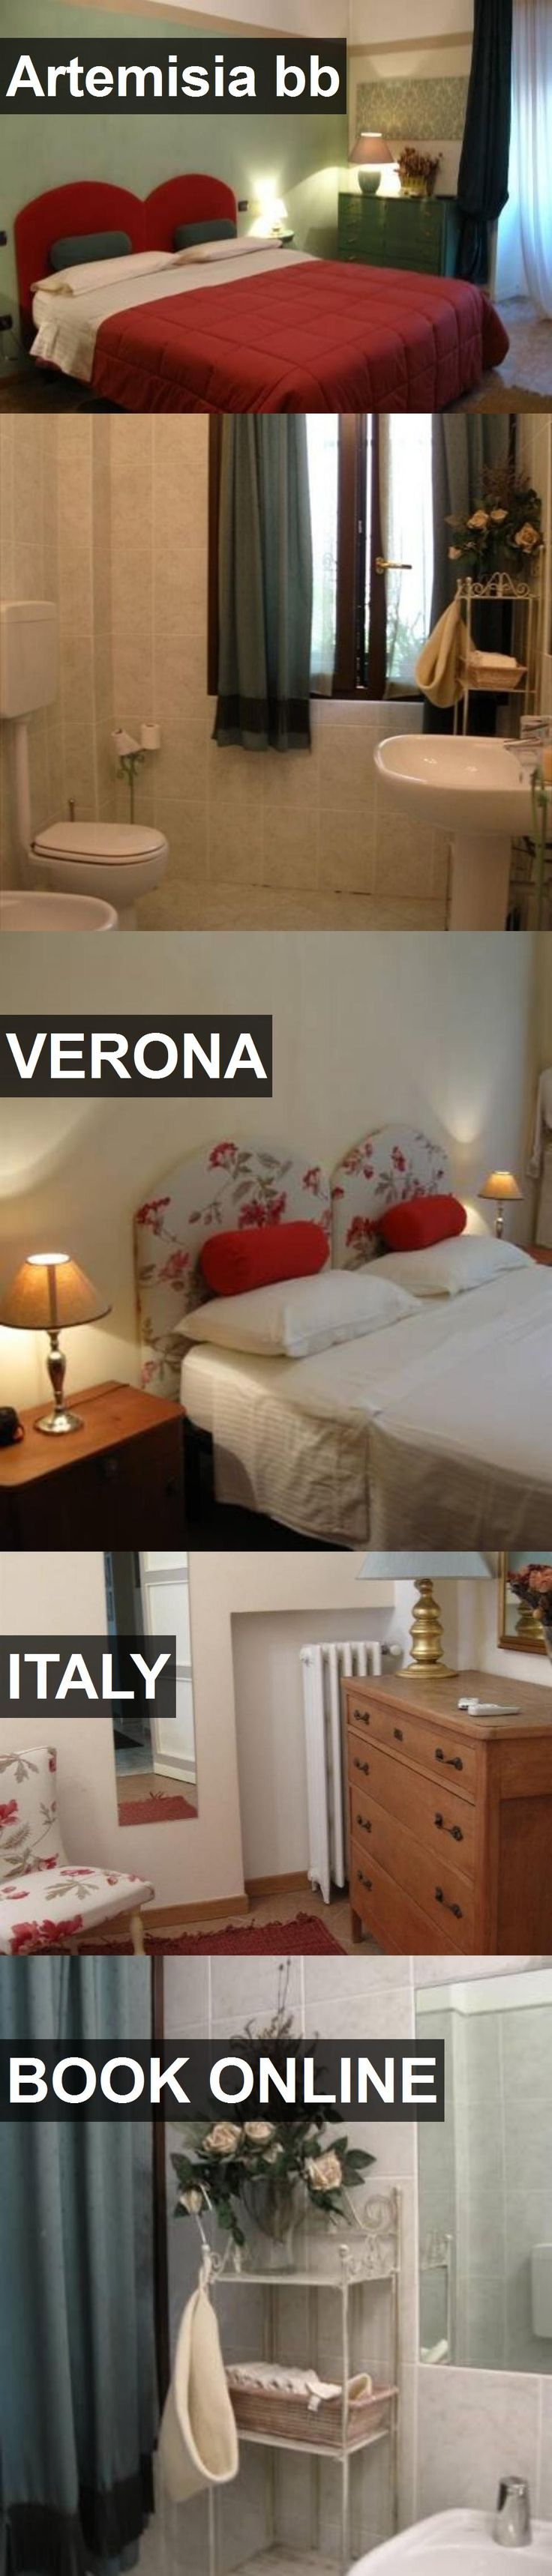 Hotel Artemisia bb in Verona, Italy. For more information, photos, reviews and best prices please follow the link. #Italy #Verona #Artemisiabb #hotel #travel #vacation